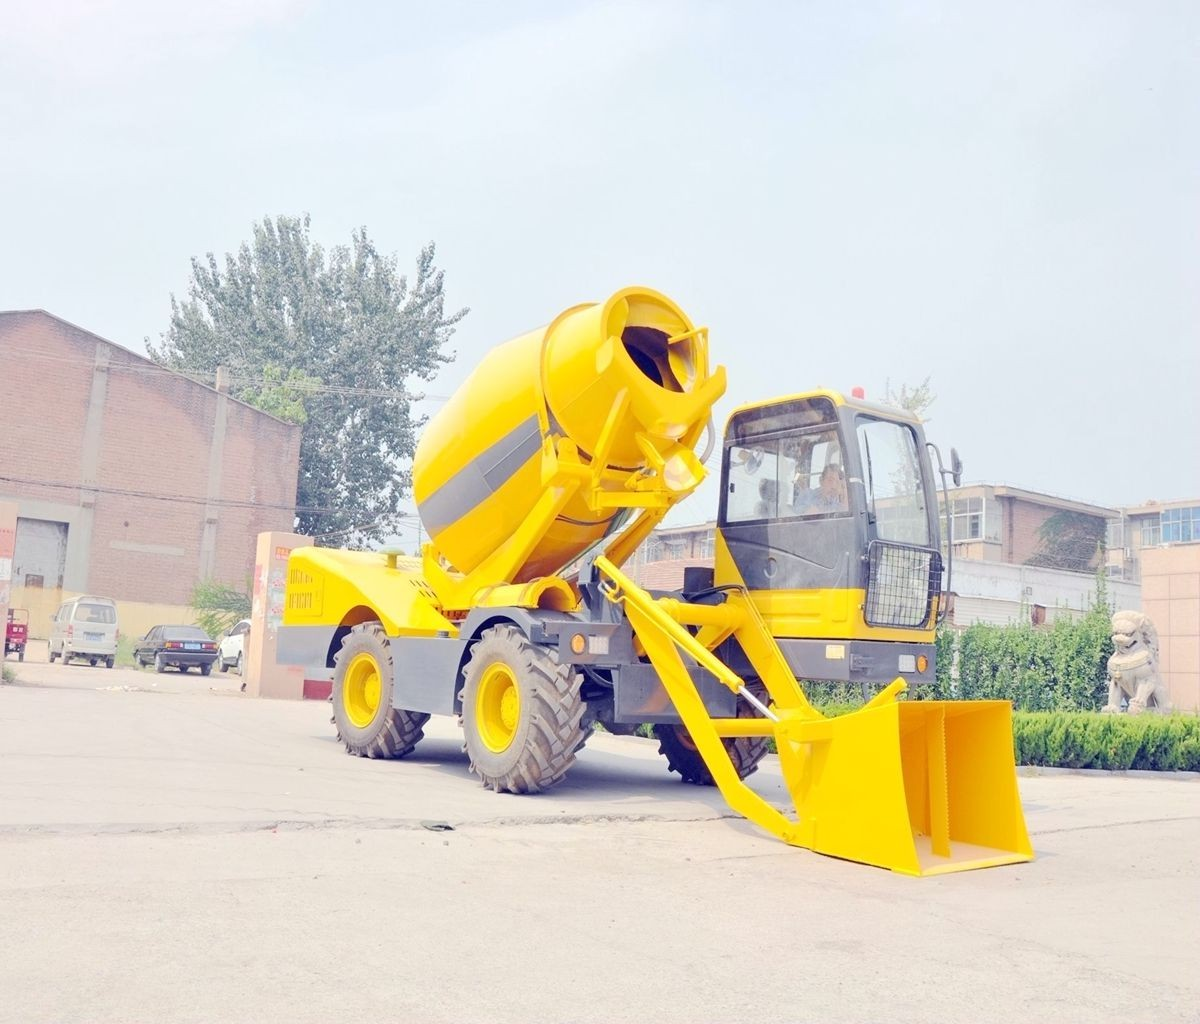 Sales Self-loading Concrete Mixer Truck Construction Mixer Price, Buy Self-loading Concrete Mixer Truck Construction Mixer Price, Self-loading Concrete Mixer Truck Construction Mixer Price Factory, Self-loading Concrete Mixer Truck Construction Mixer Price Brands